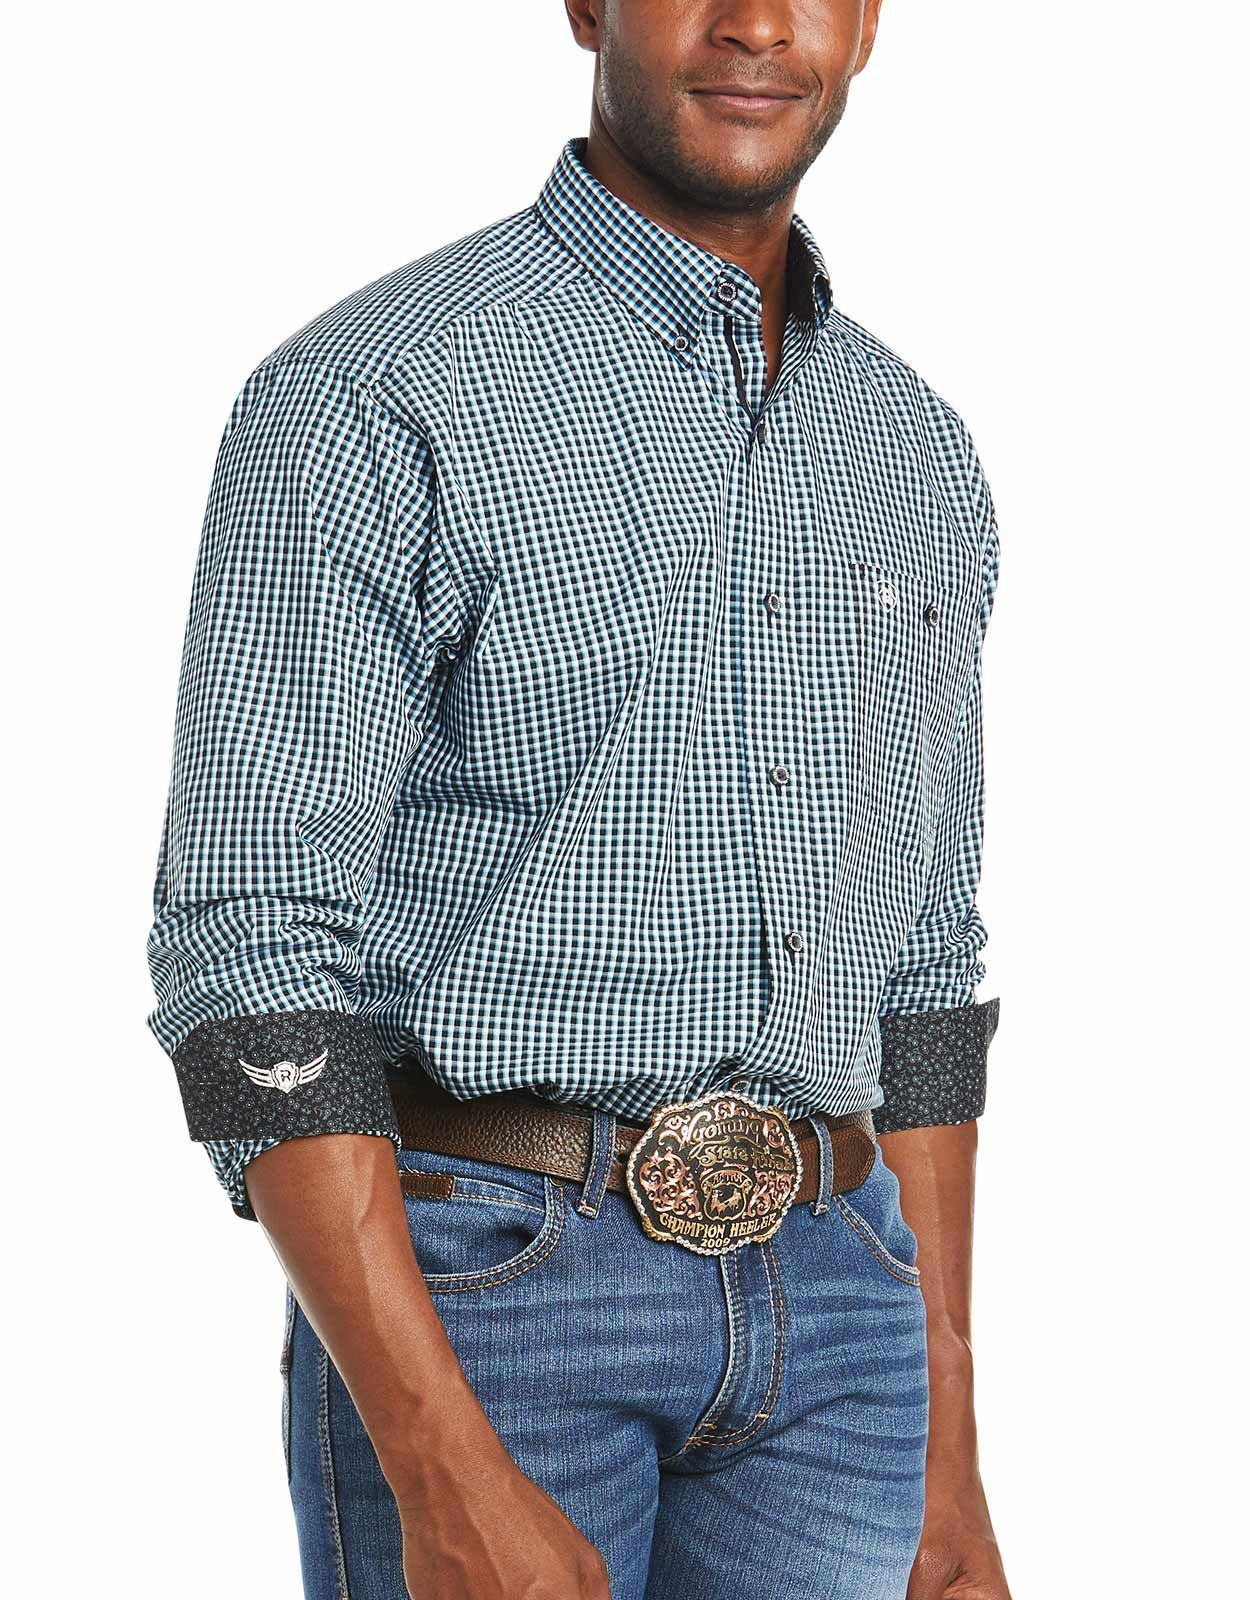 Ariat Men's Relentless Classic Fit Stretch Long Sleeve Check Button Down Shirt- Black